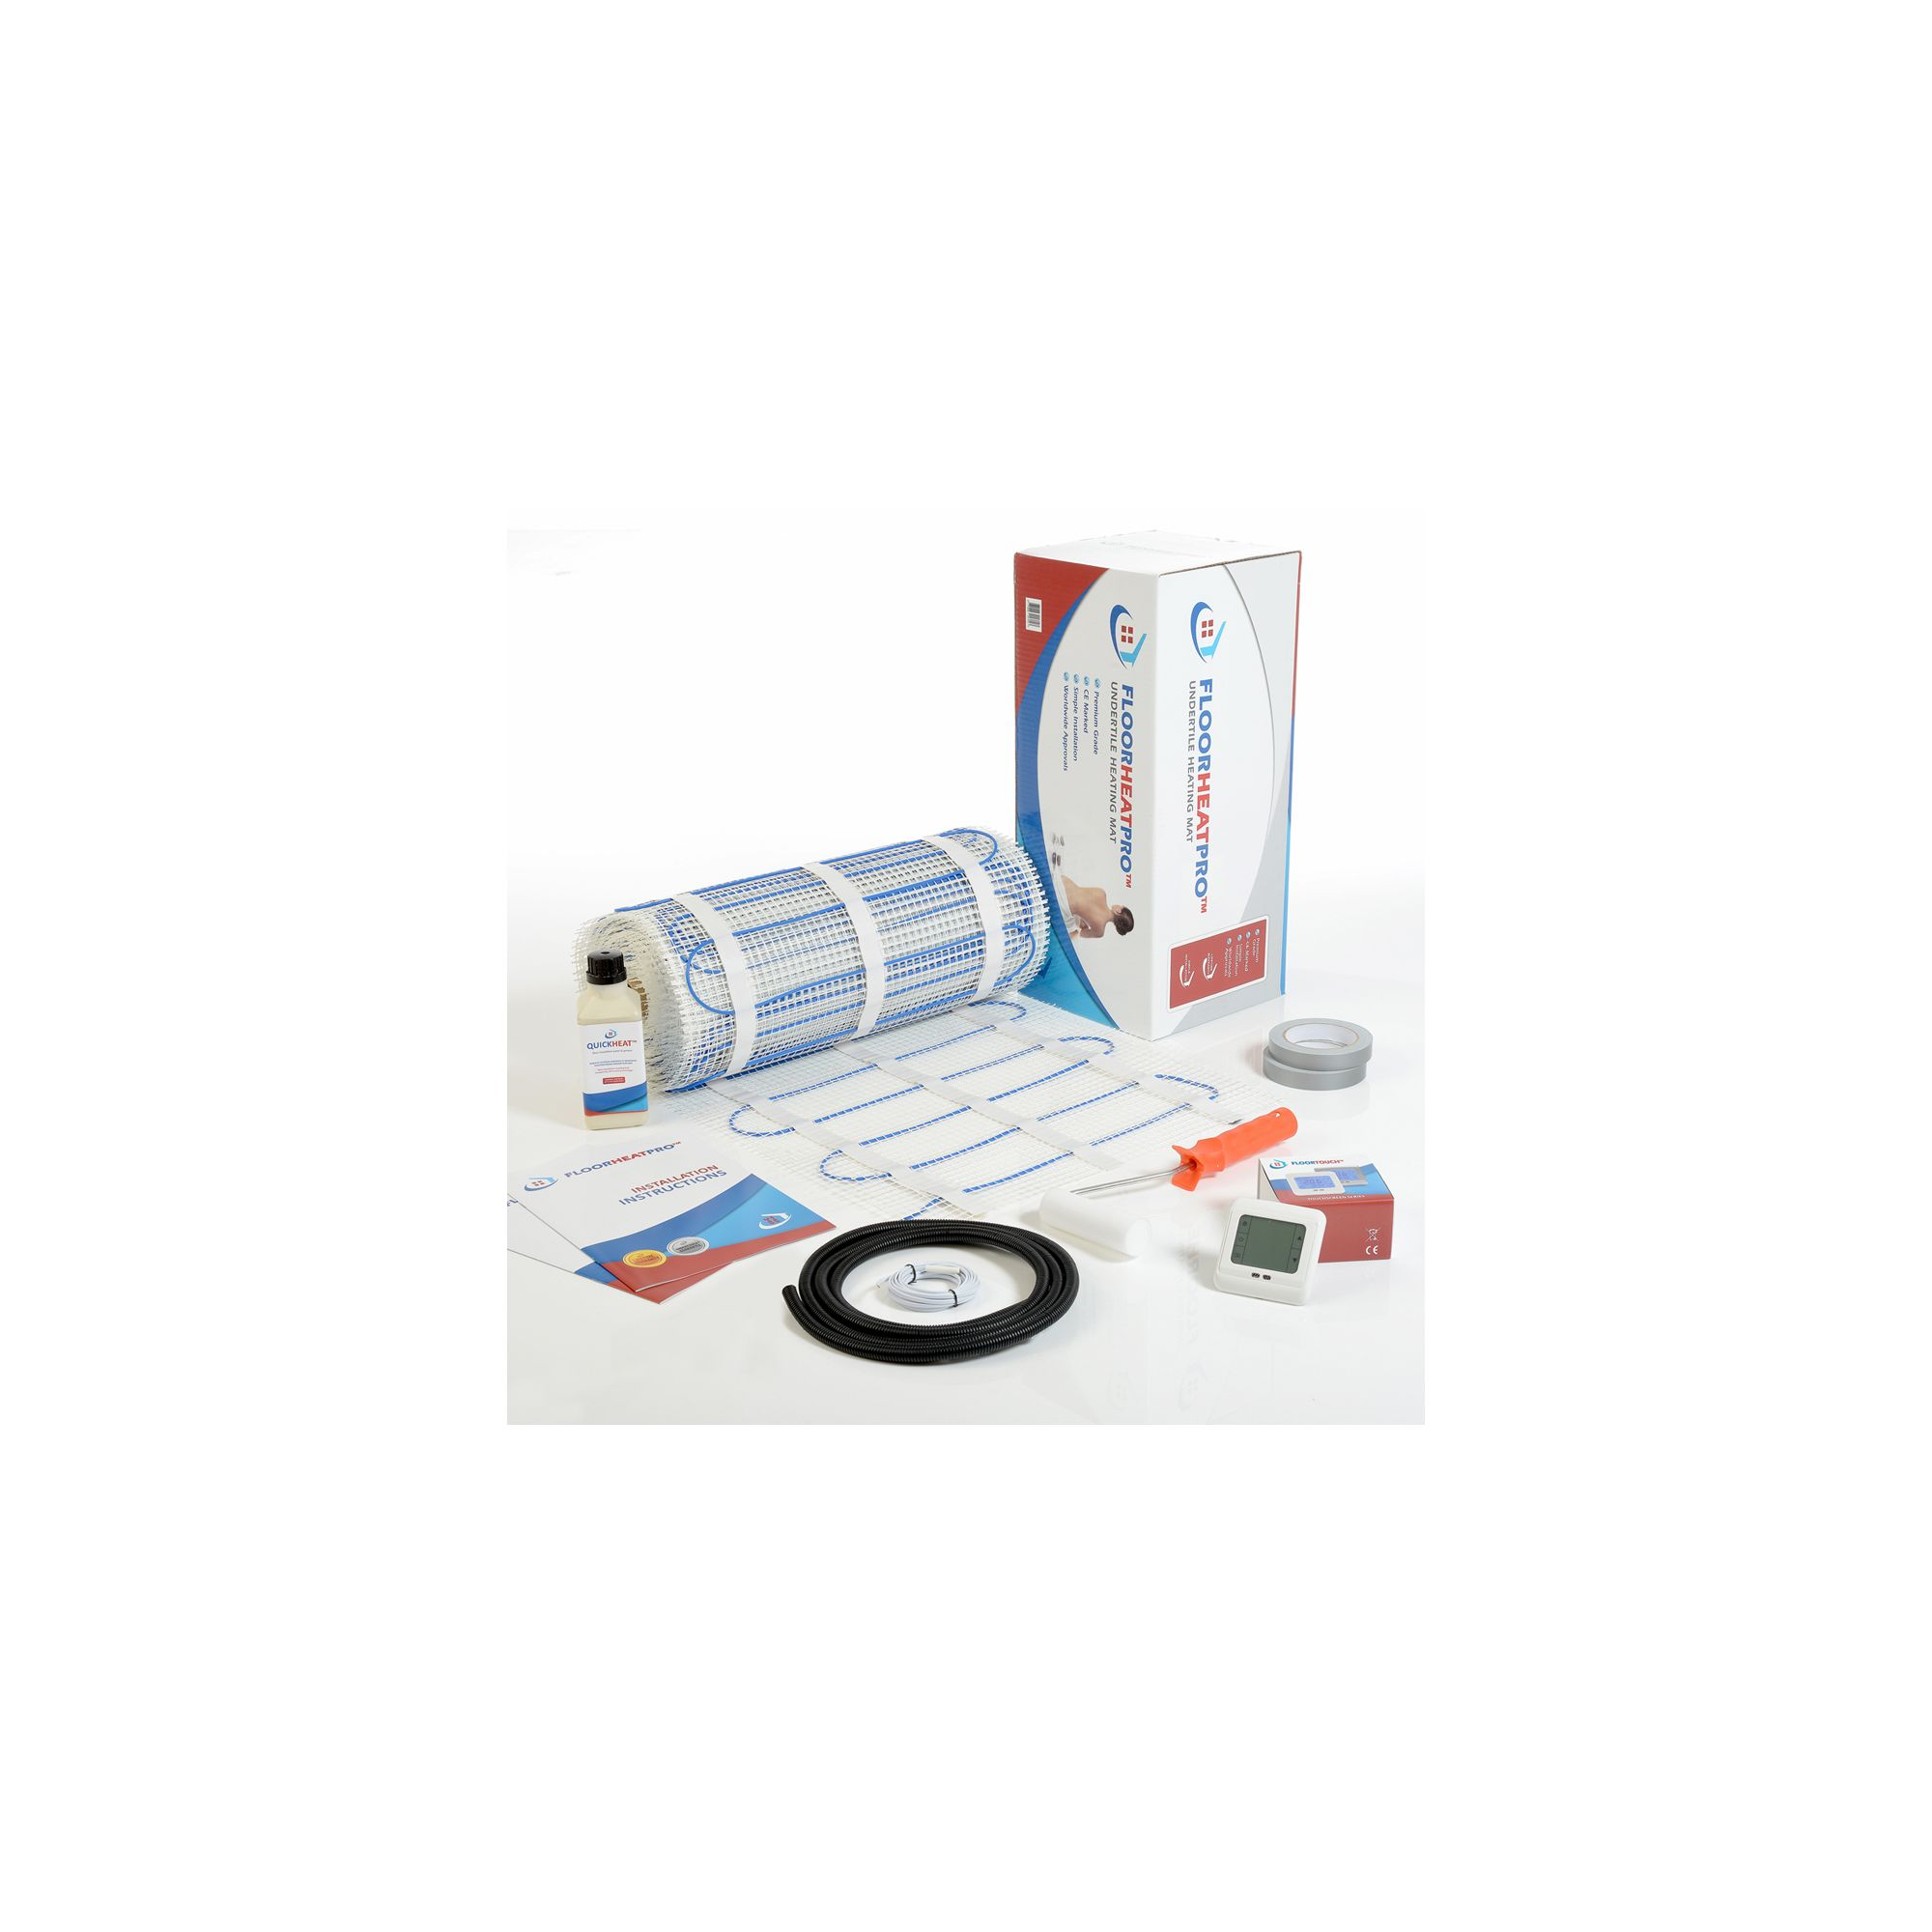 16.0m2 - Underfloor Electric Heating Kit 200w/m2 - Tiles at Tesco Direct